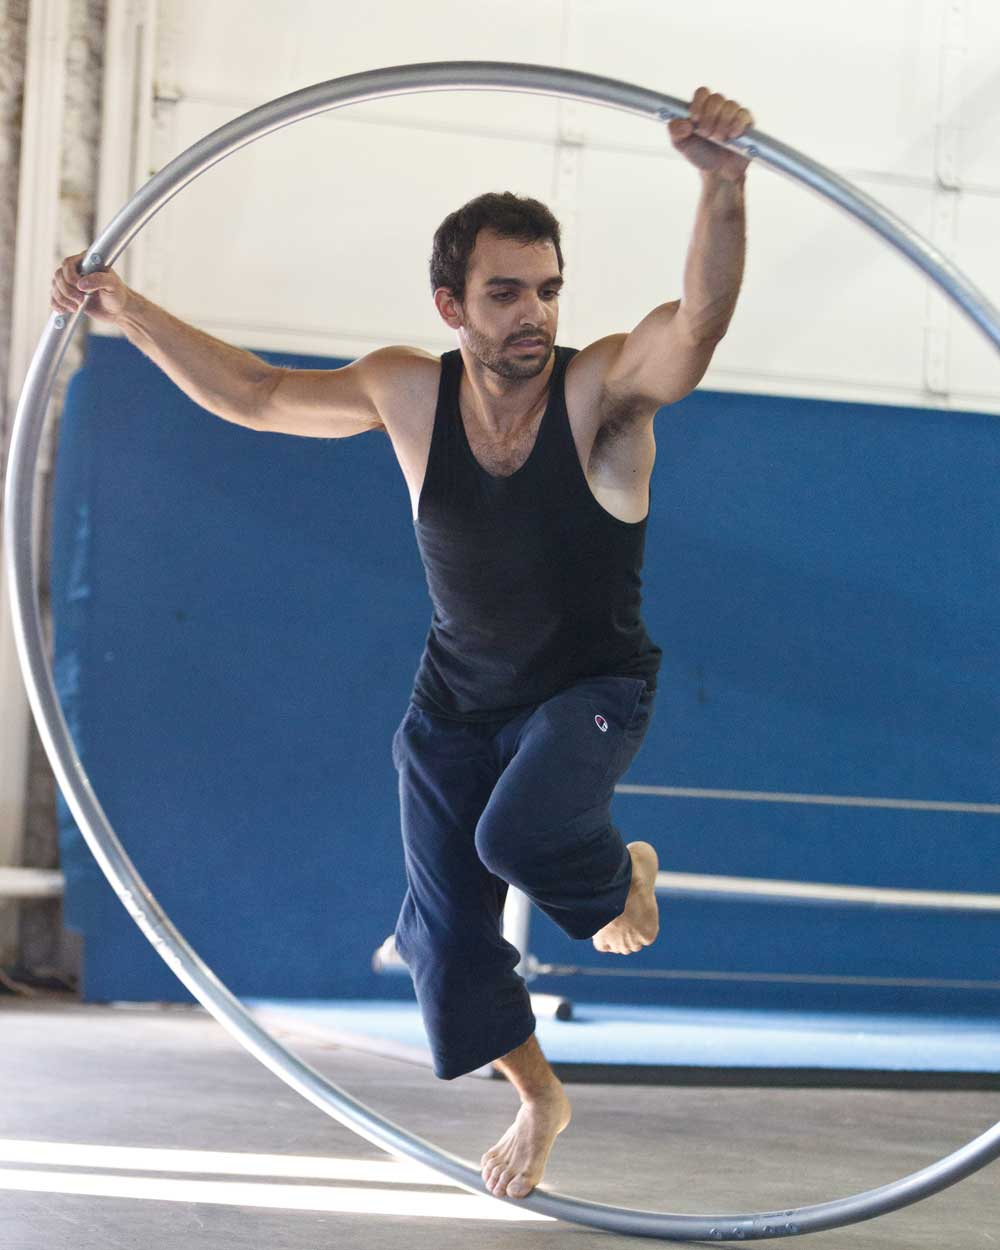 man training on cyr wheel